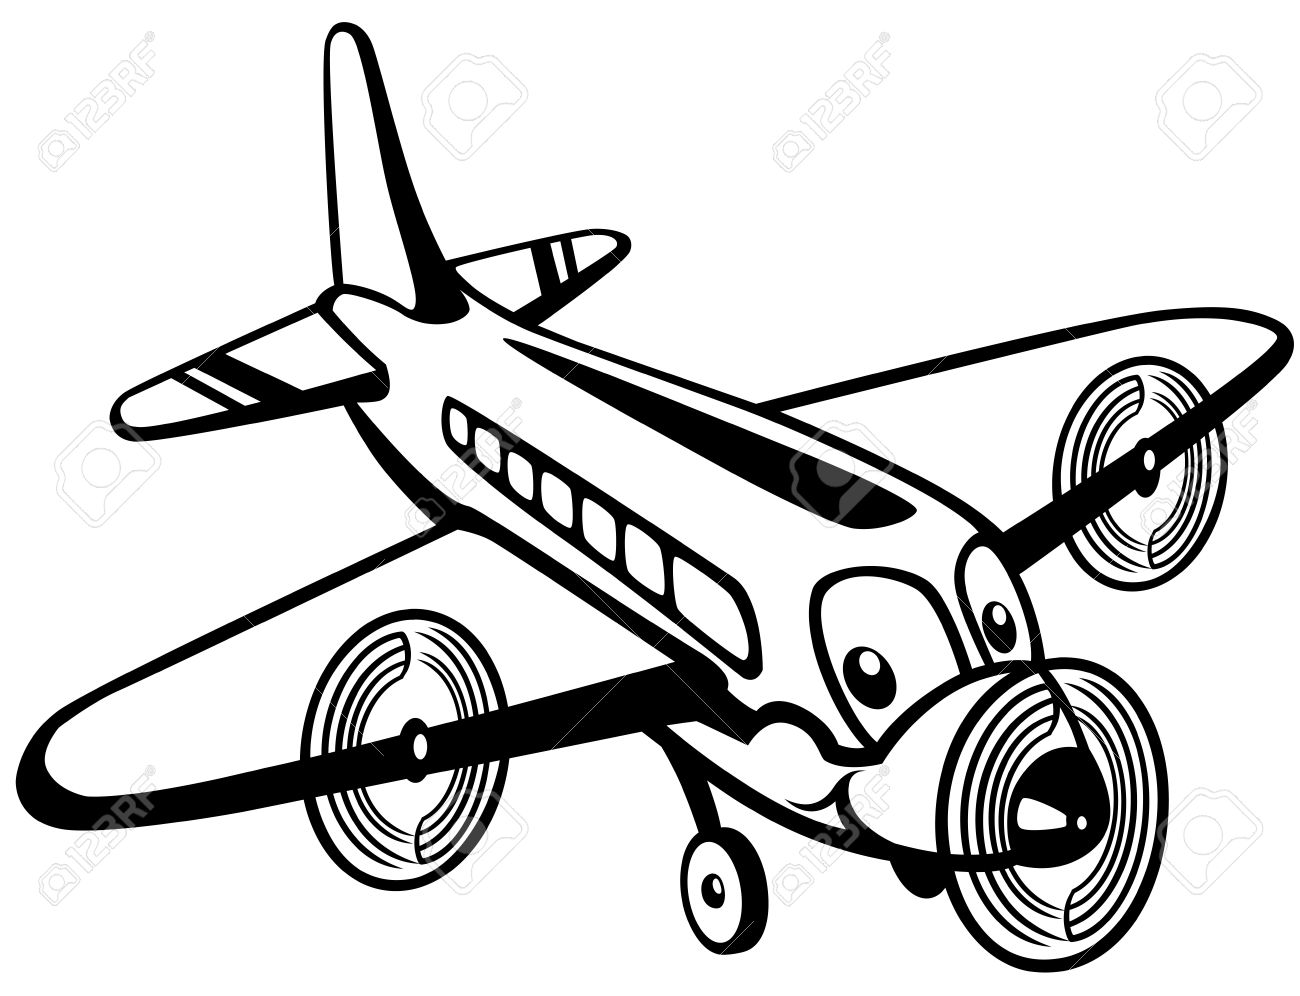 1300x996 Toy Plane Clipart Black And White